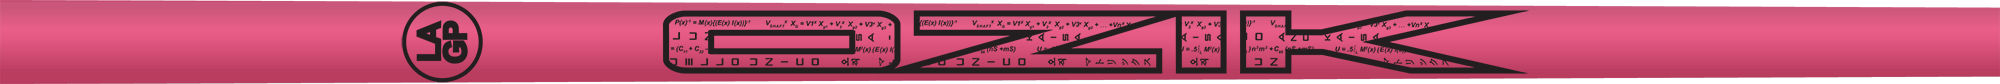 Ozik White Tie: Neon Pink Black Satin - Wood 60 X